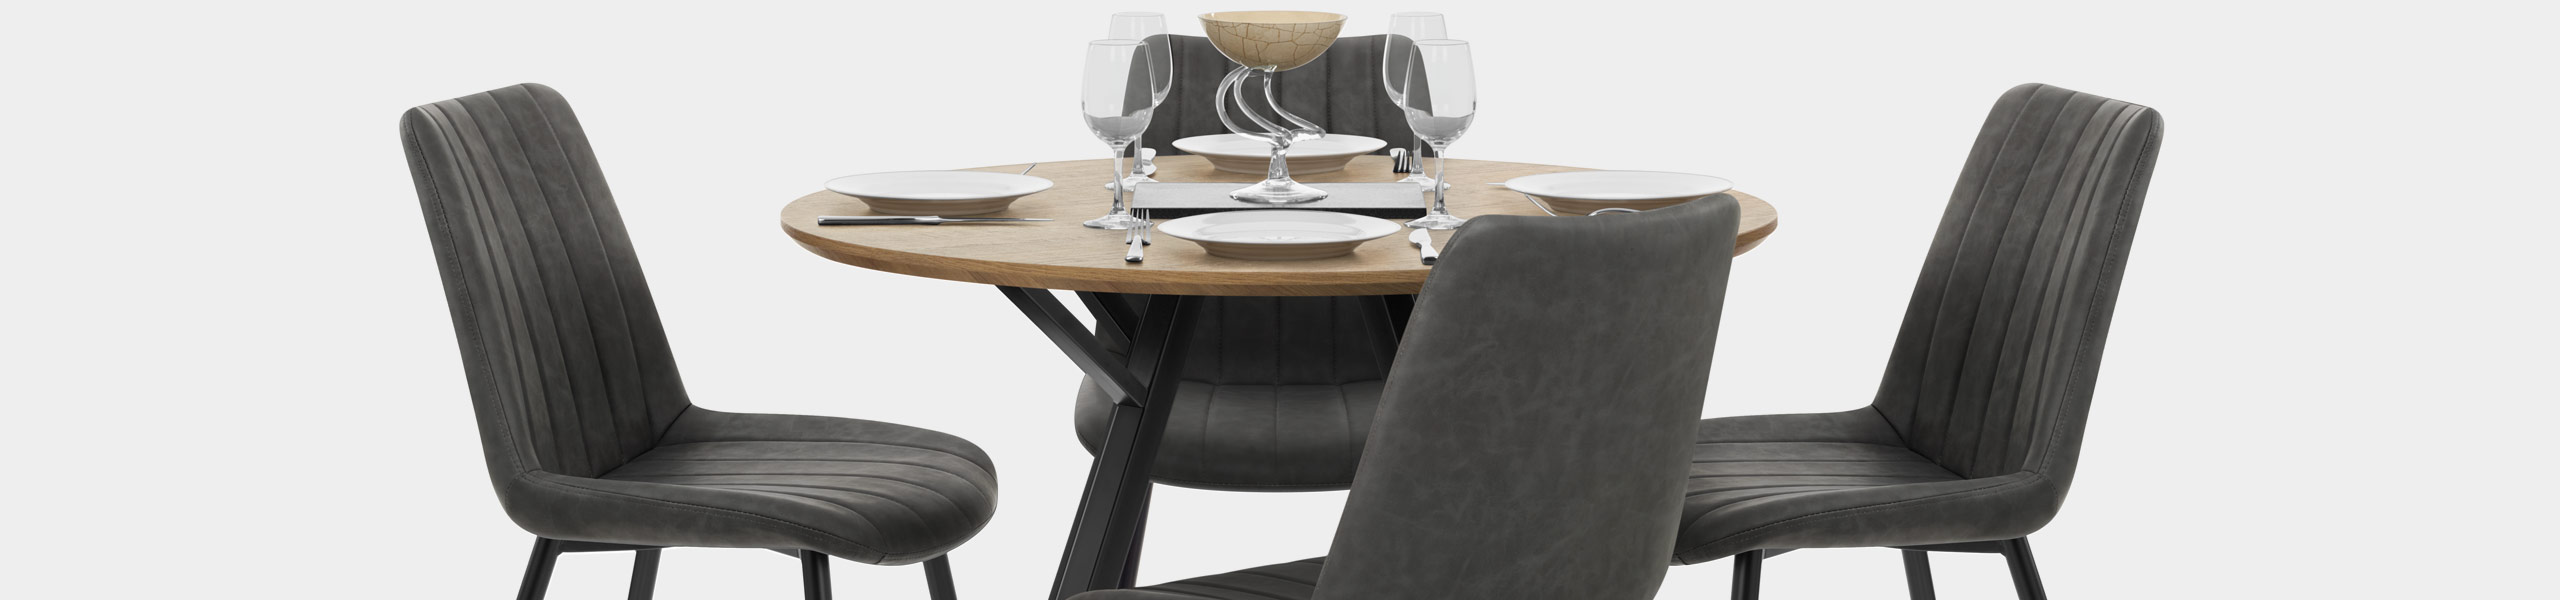 Sussex Dining Set Oak & Charcoal Video Banner